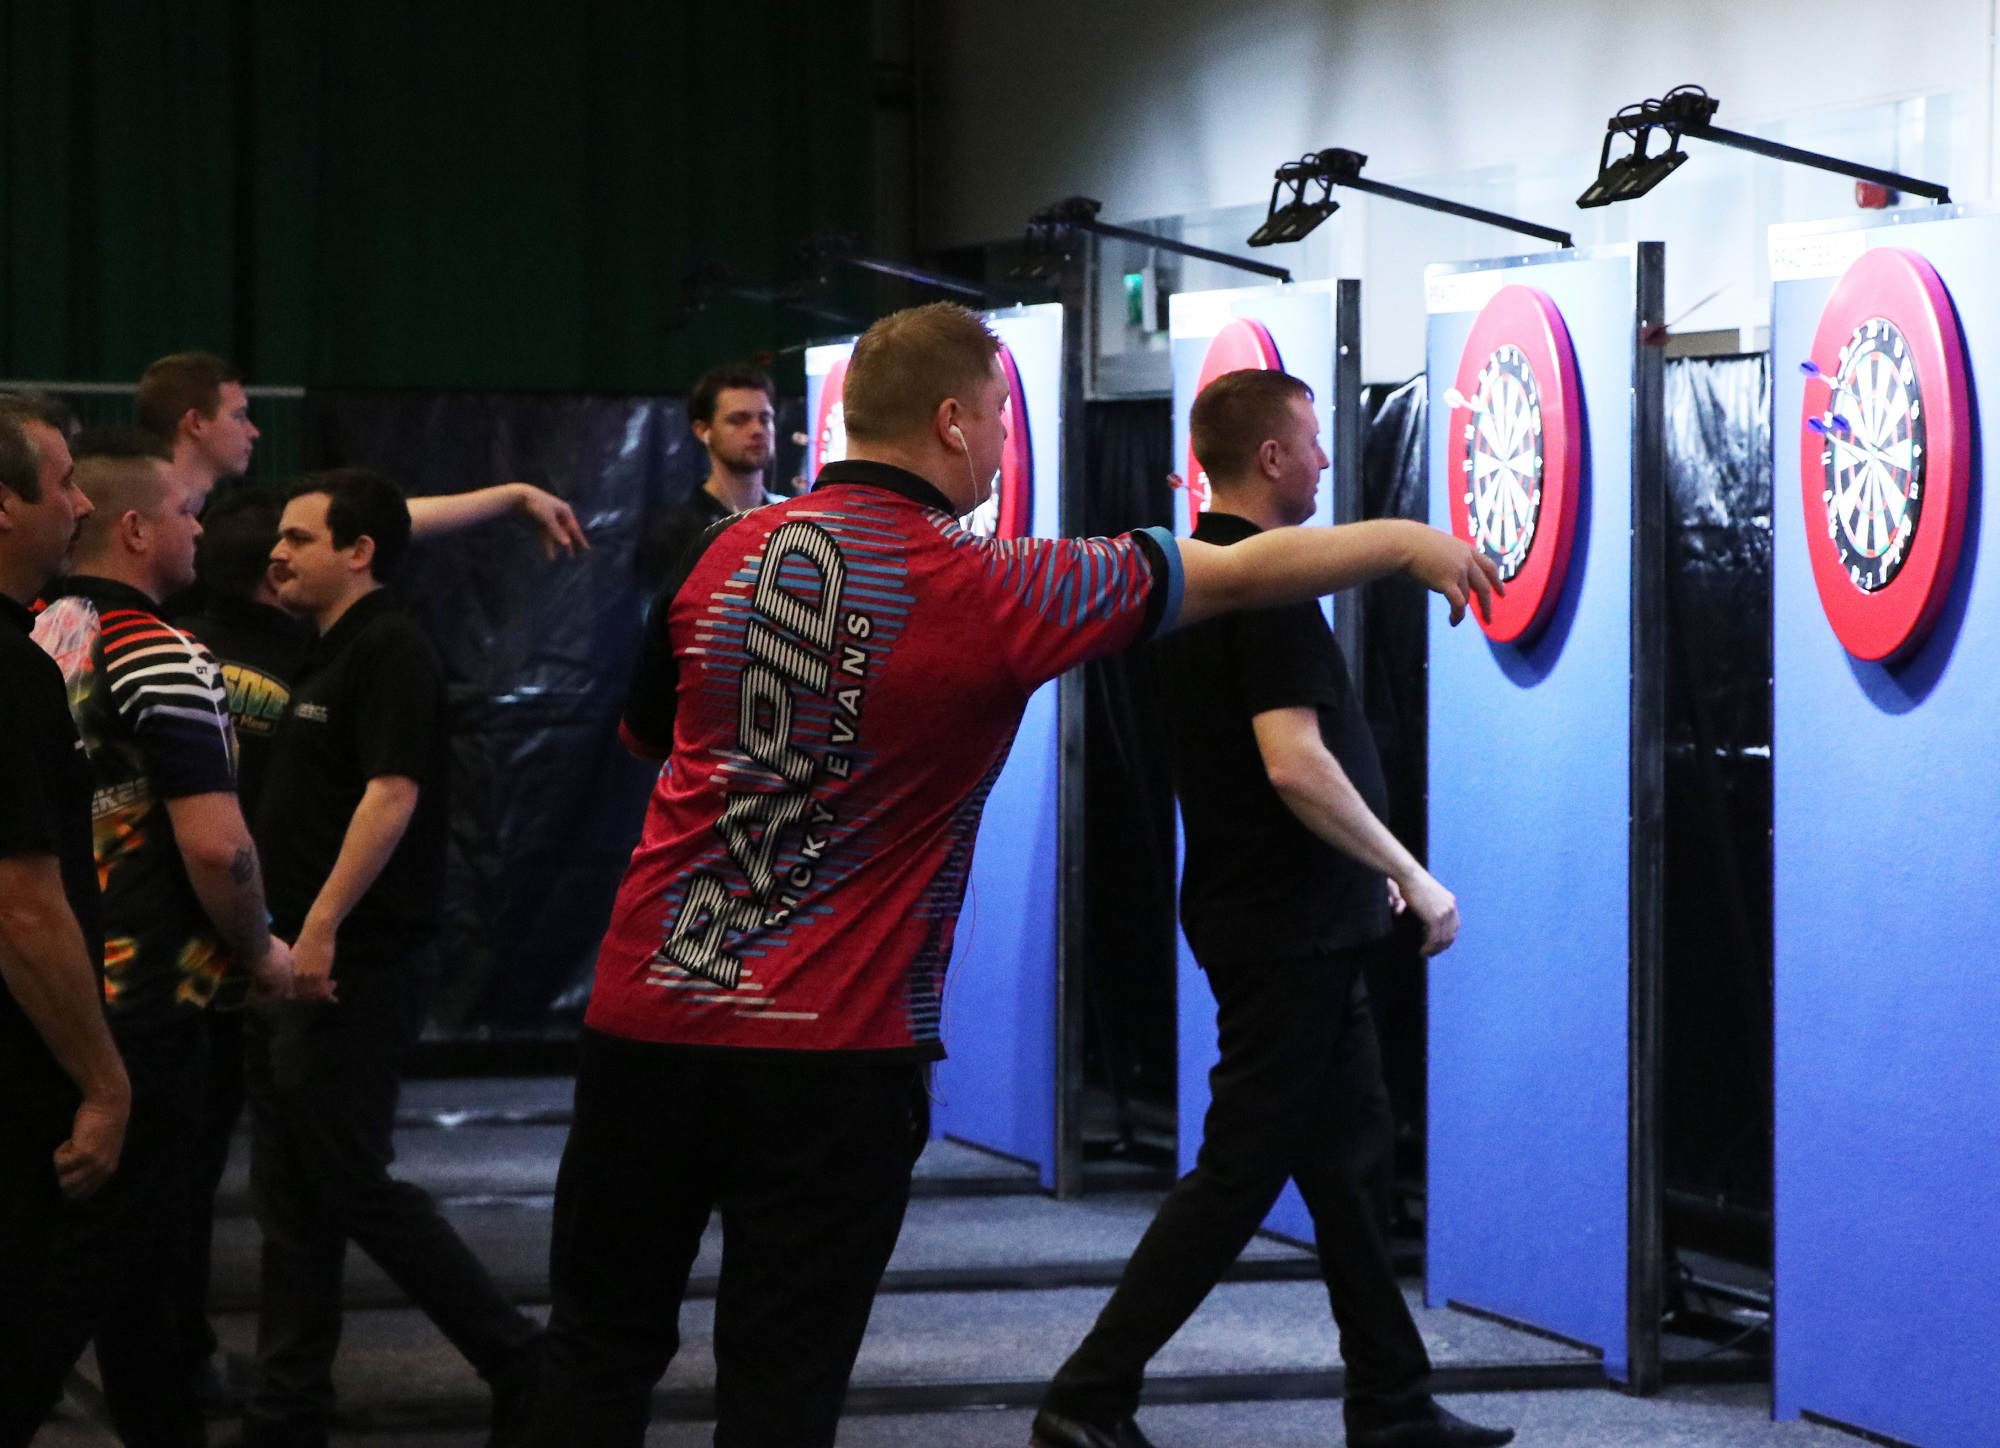 How to watch PDC Super Series 5